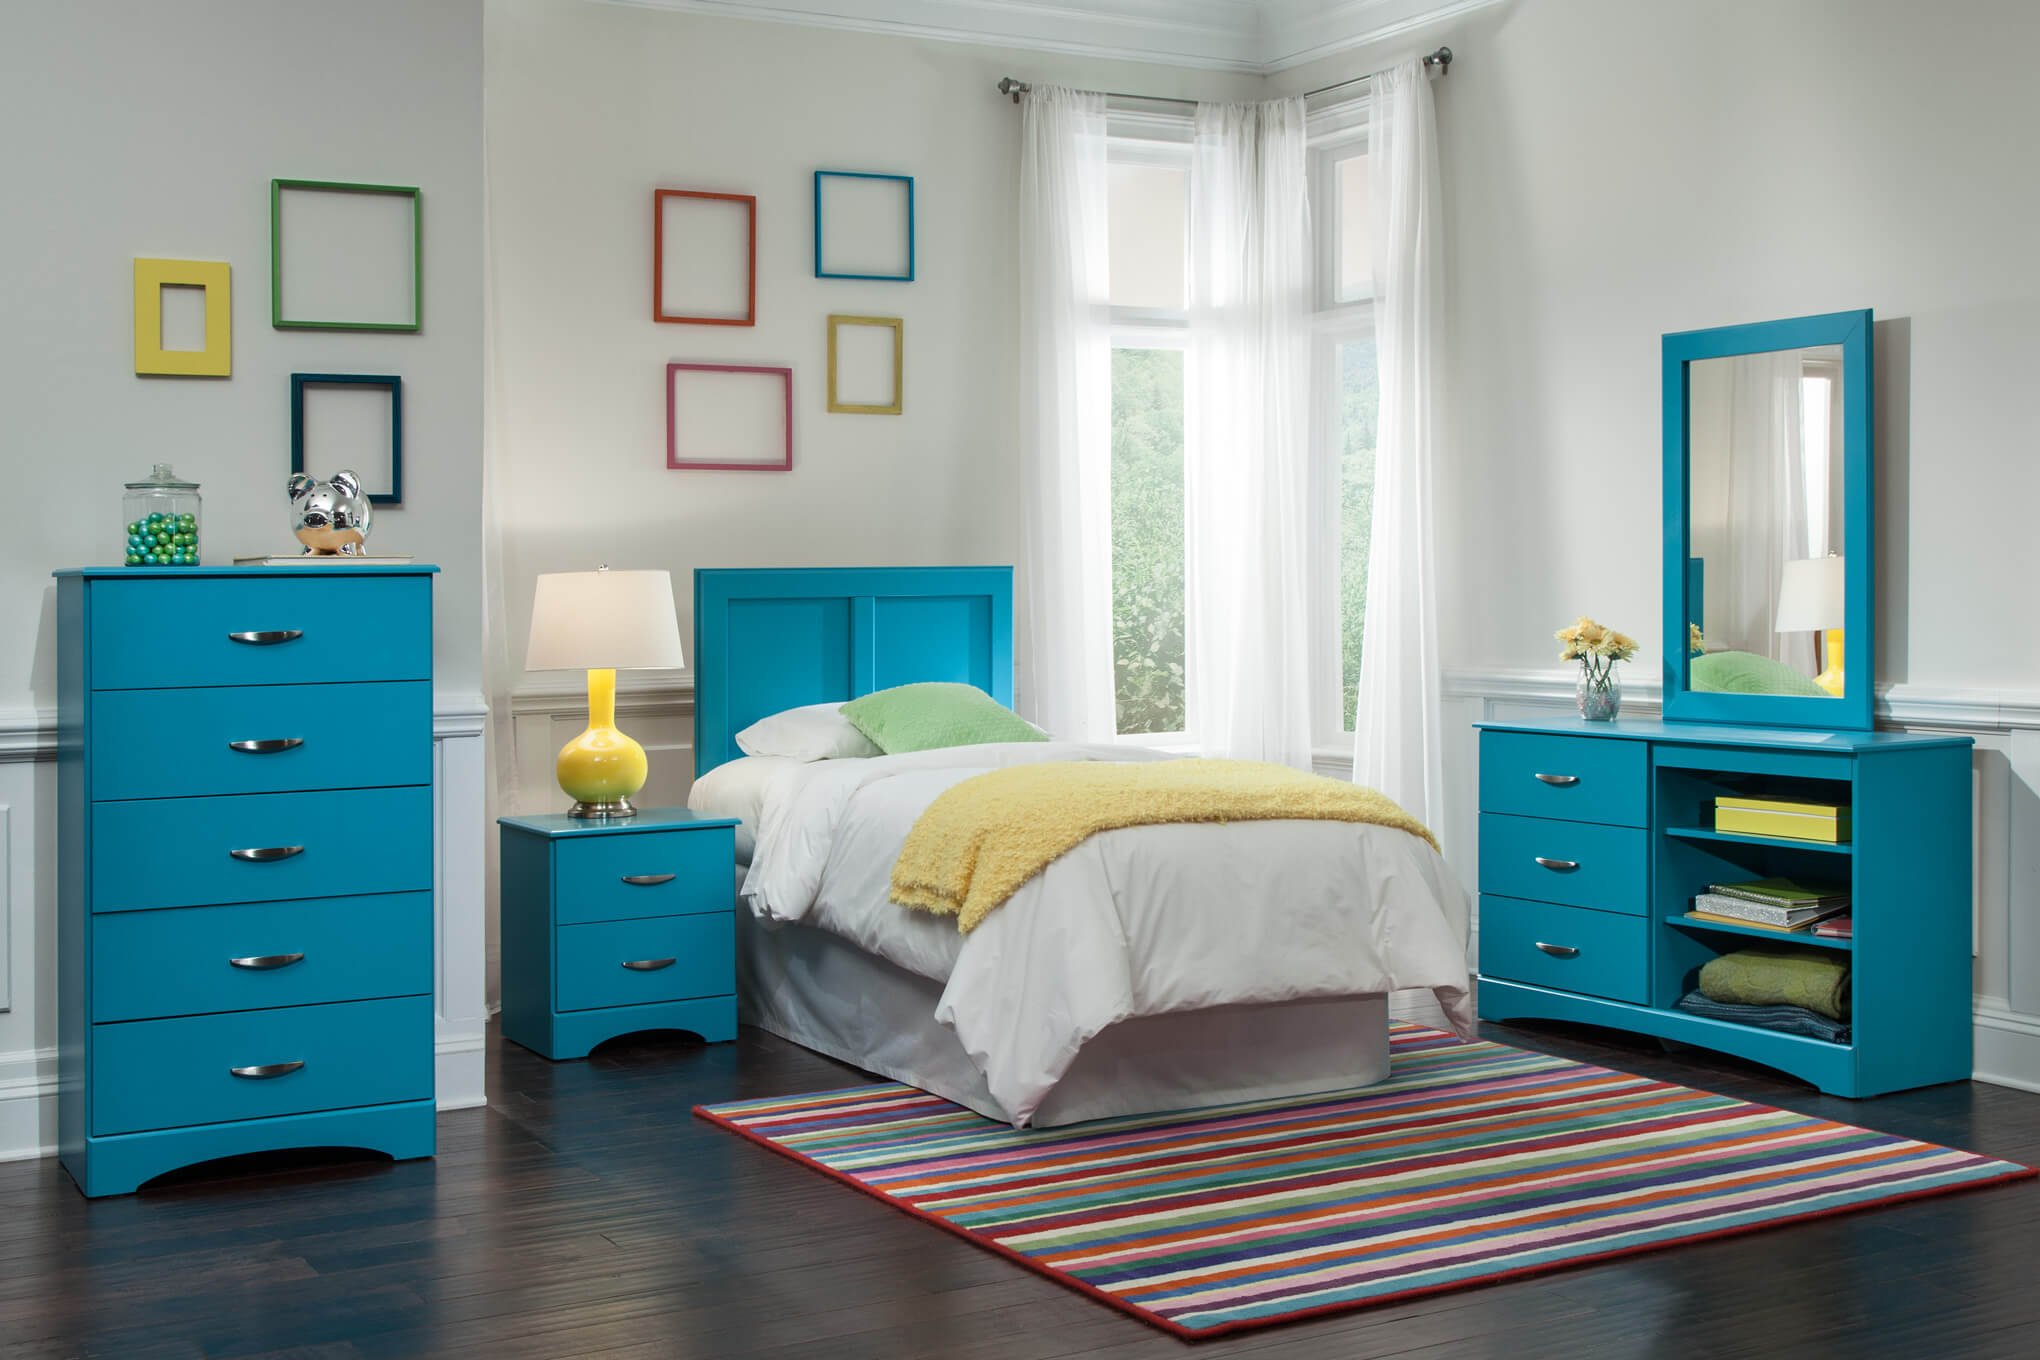 Kids  Bedroom Sets. Kith Turquoise Youth Bedroom Set   Kids  Bedroom Sets